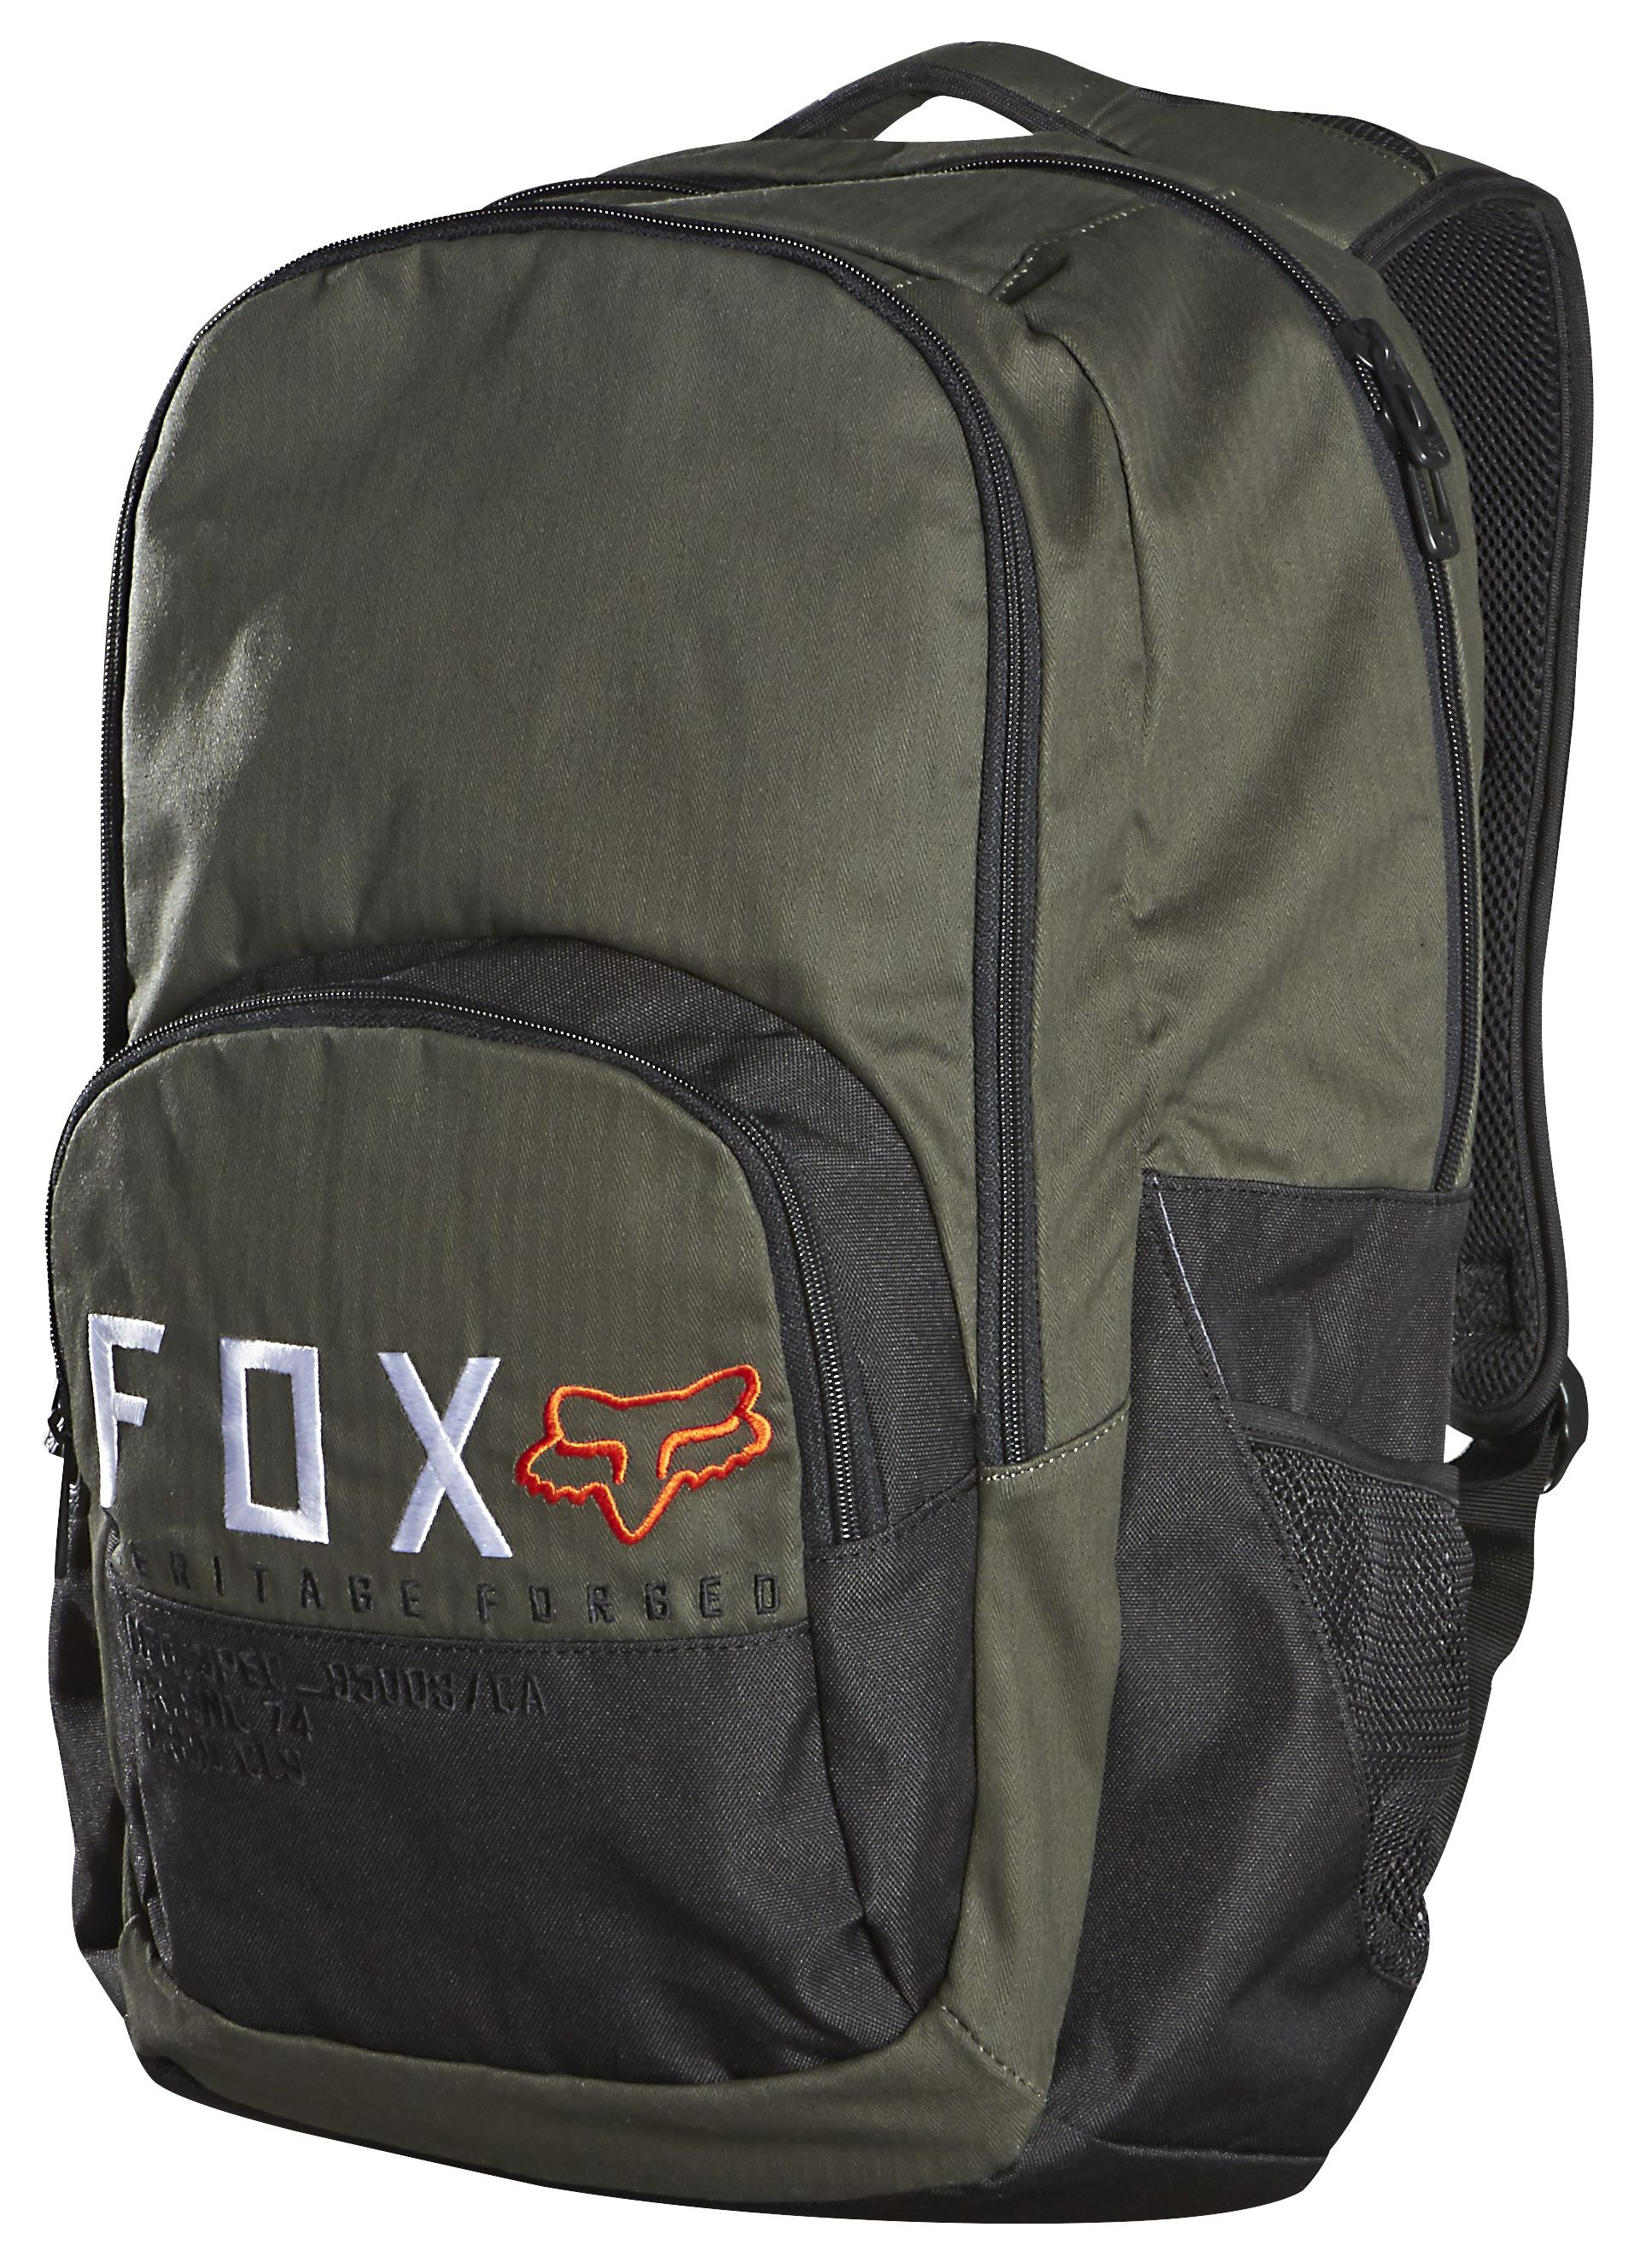 Fox Racing Let's Ride 3 Backpack - RevZilla - photo#21